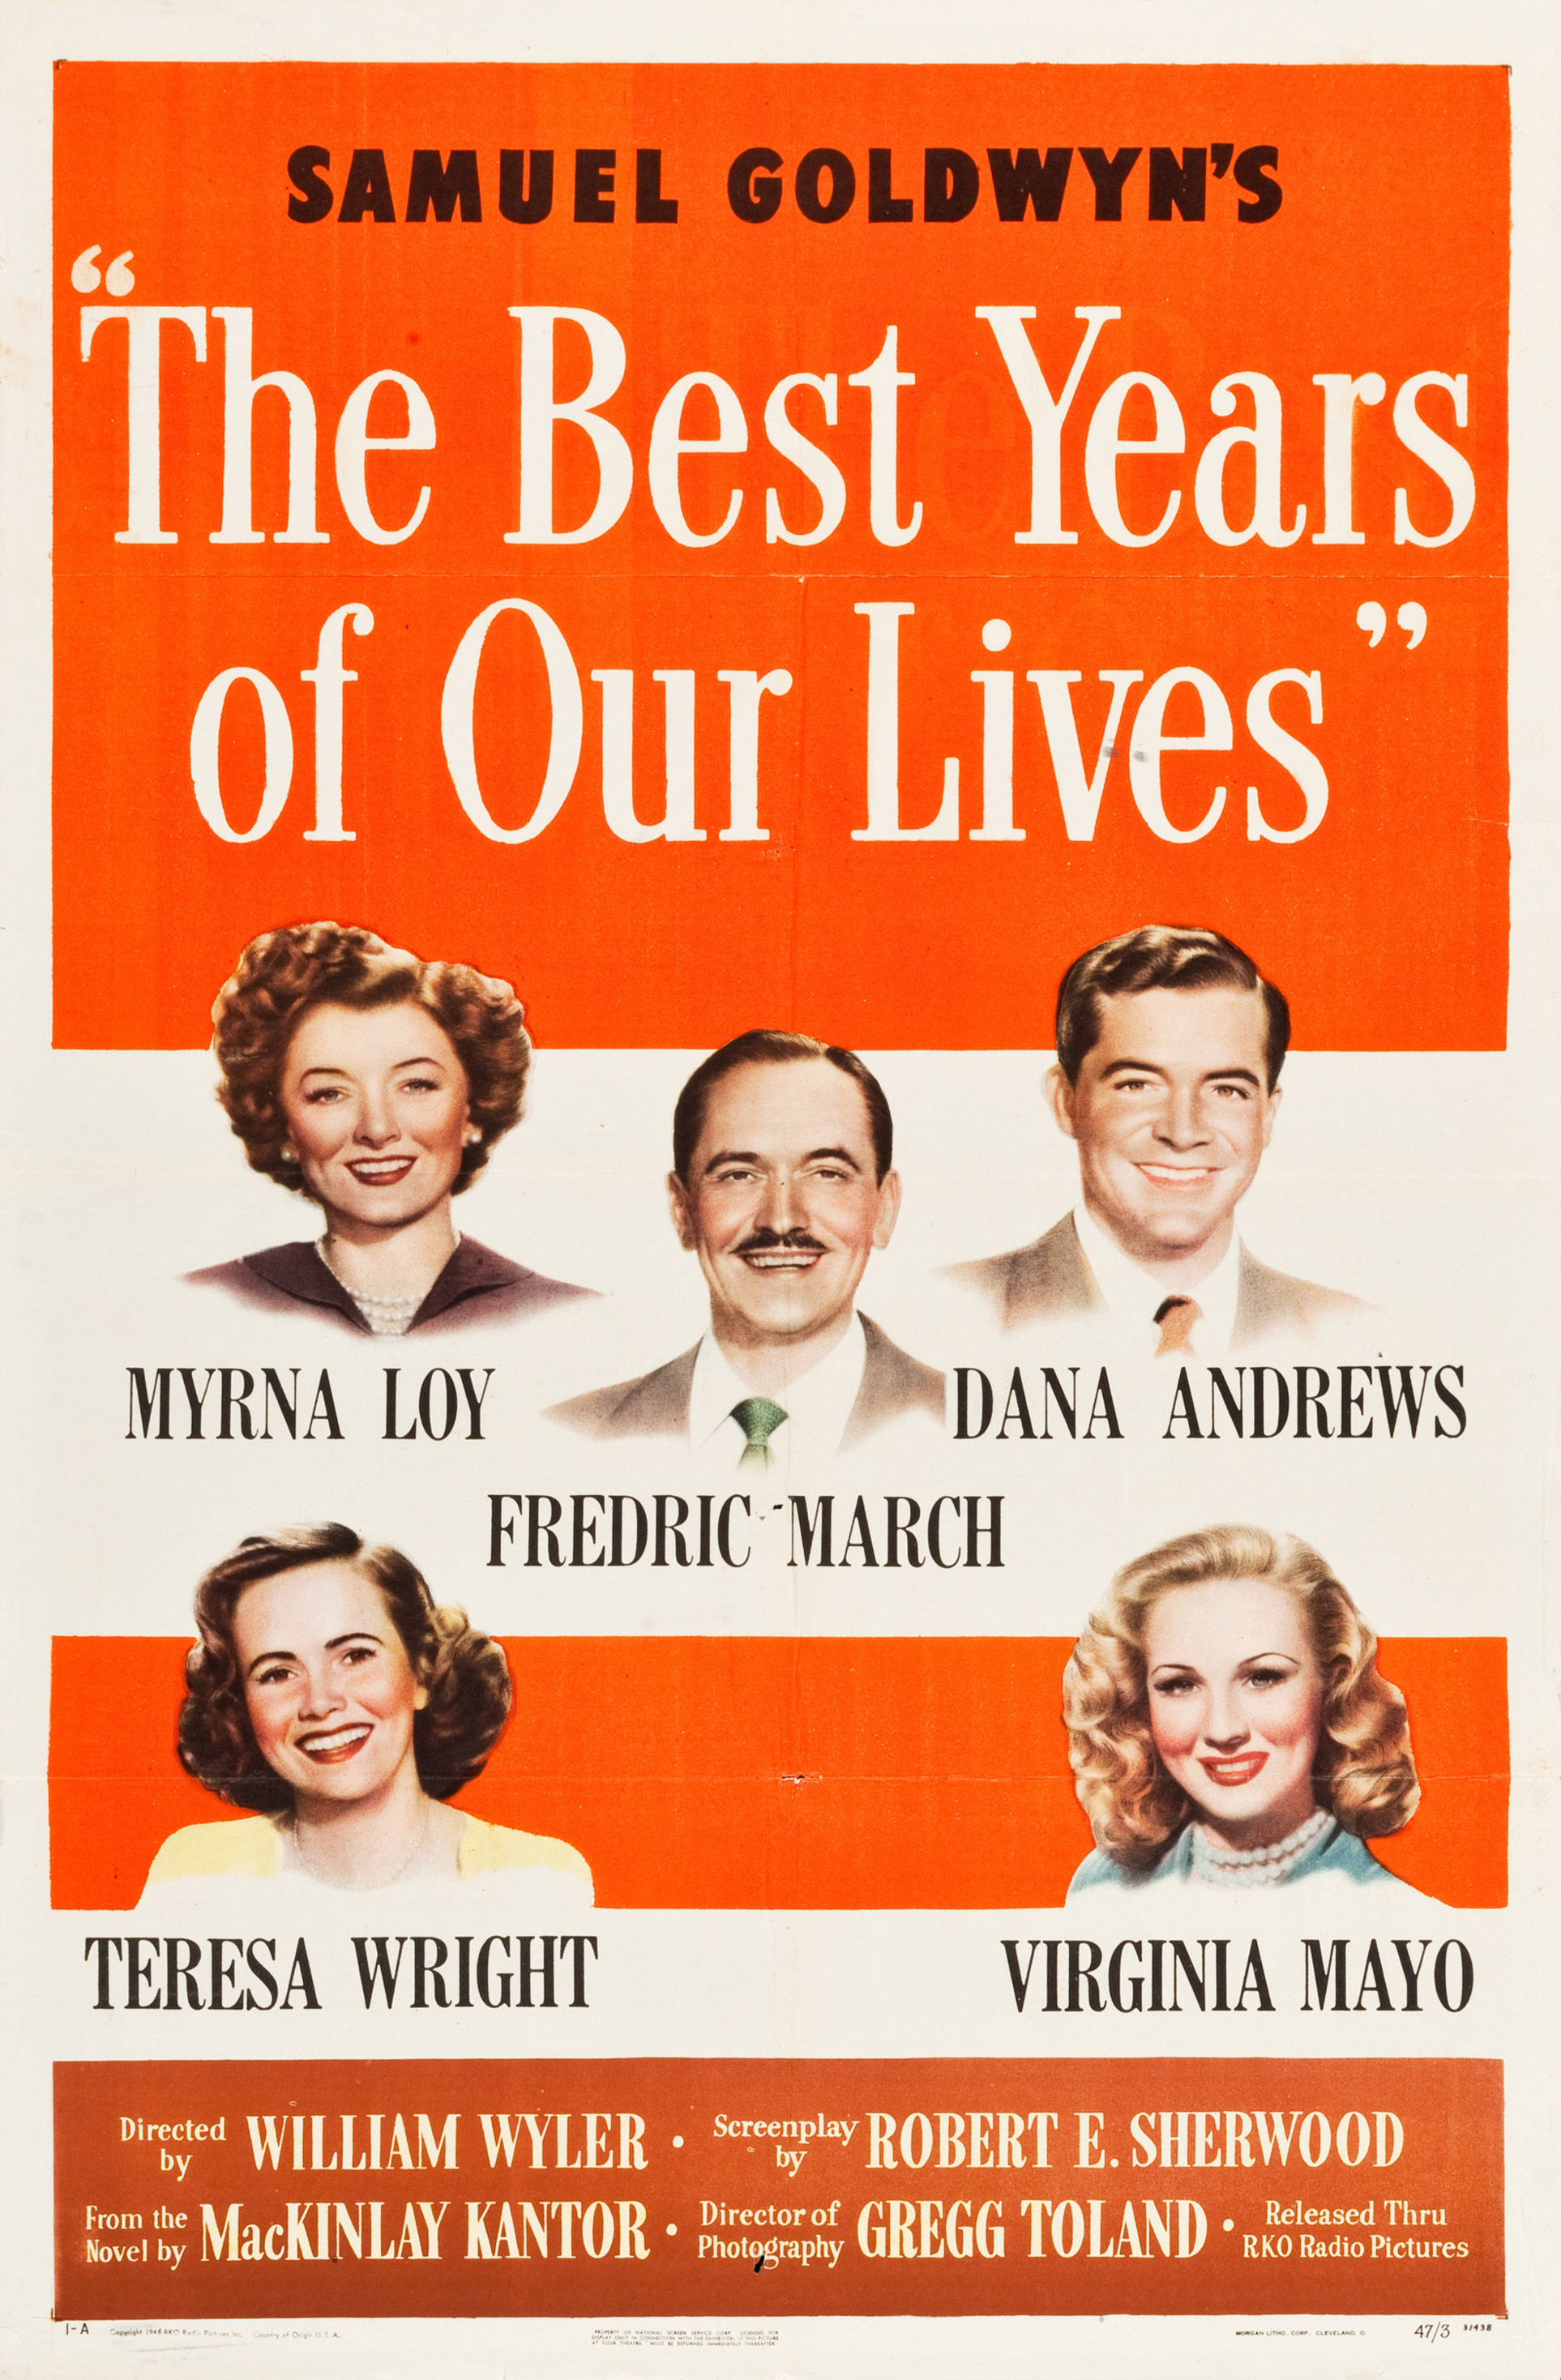 The Best Years of Our Lives - Wikipedia